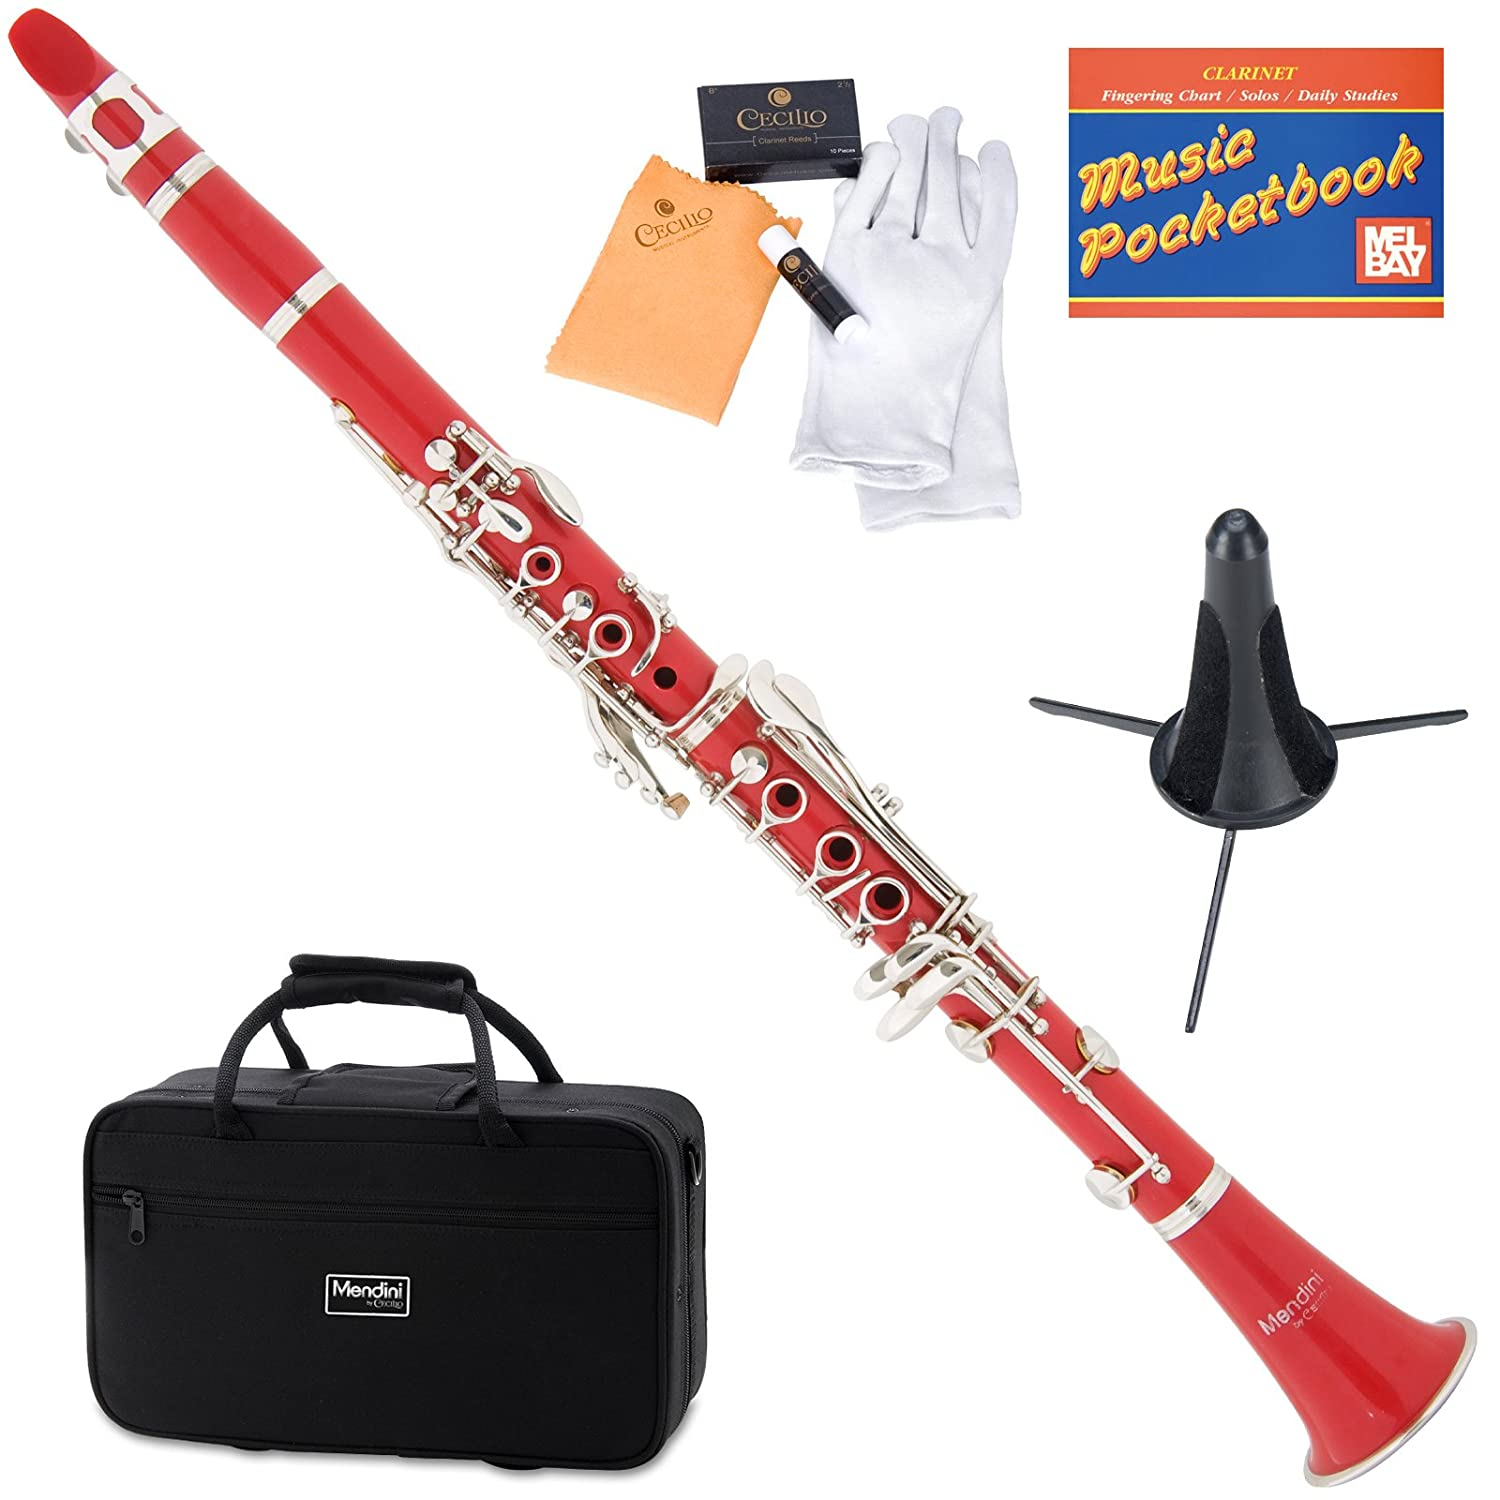 Mendini MCT-P+SD+PB Purple ABS B Flat Clarinet with Case, Stand, Pocketbook, Mouthpiece, 10 Reeds and More Cecilio Musical Instruments